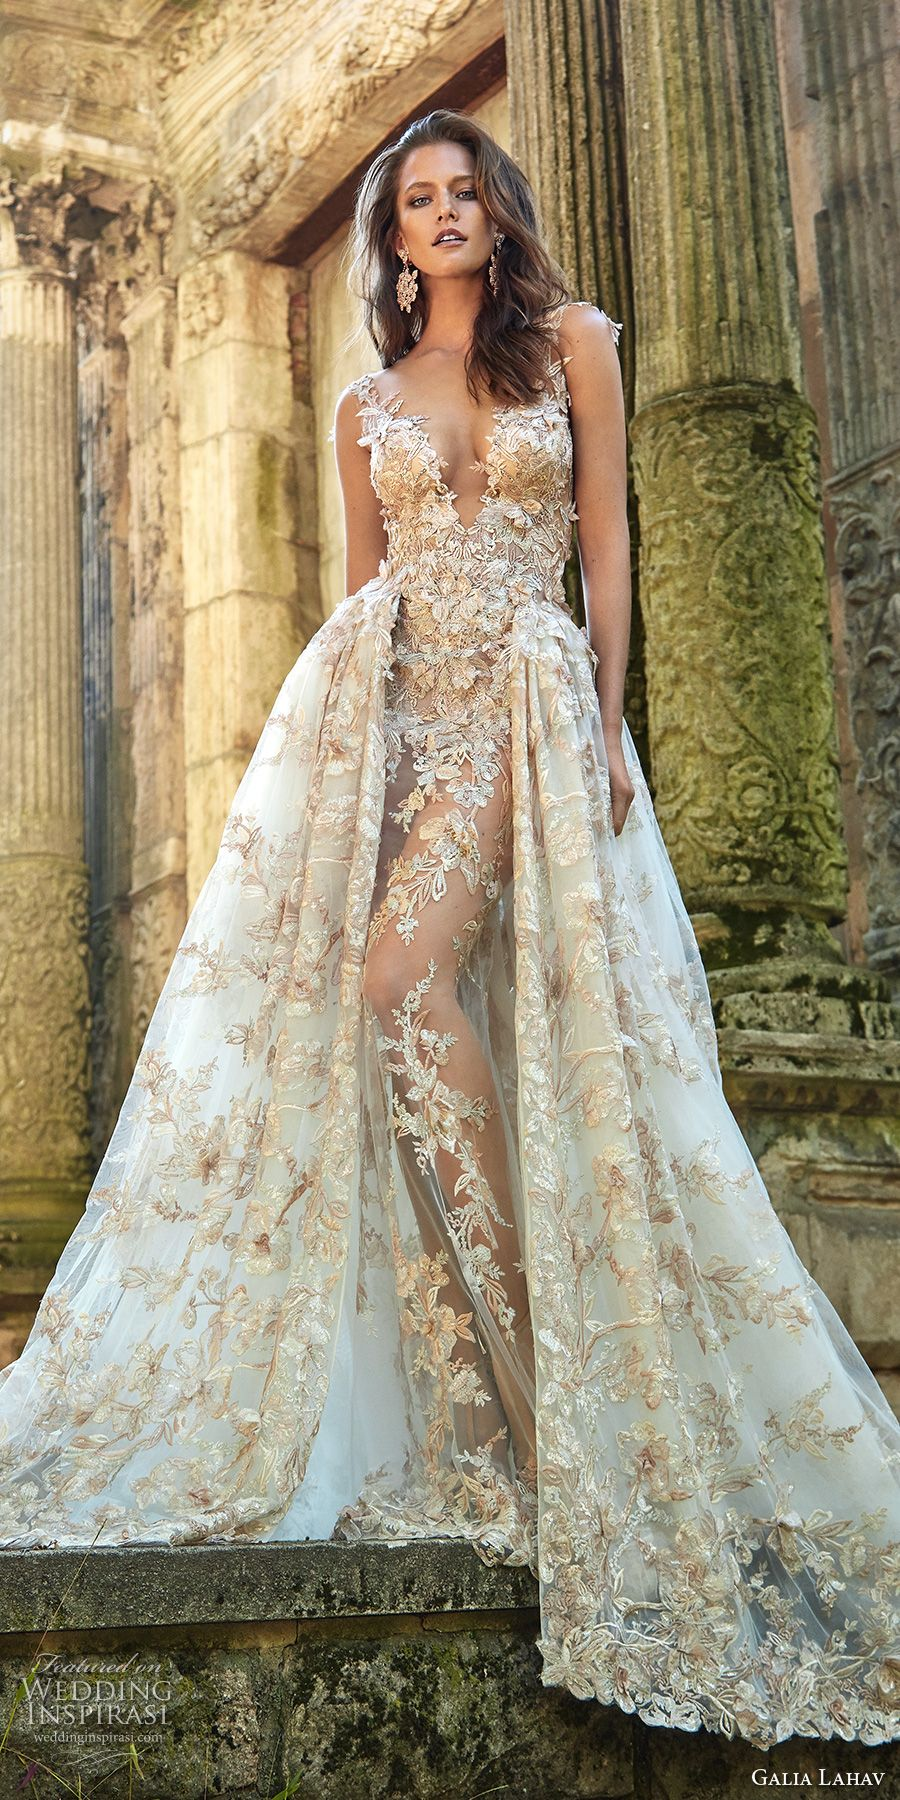 classy wedding dresses Beautiful Bridal Dreams are Made of These Galia Lahav Fall Wedding Dresses